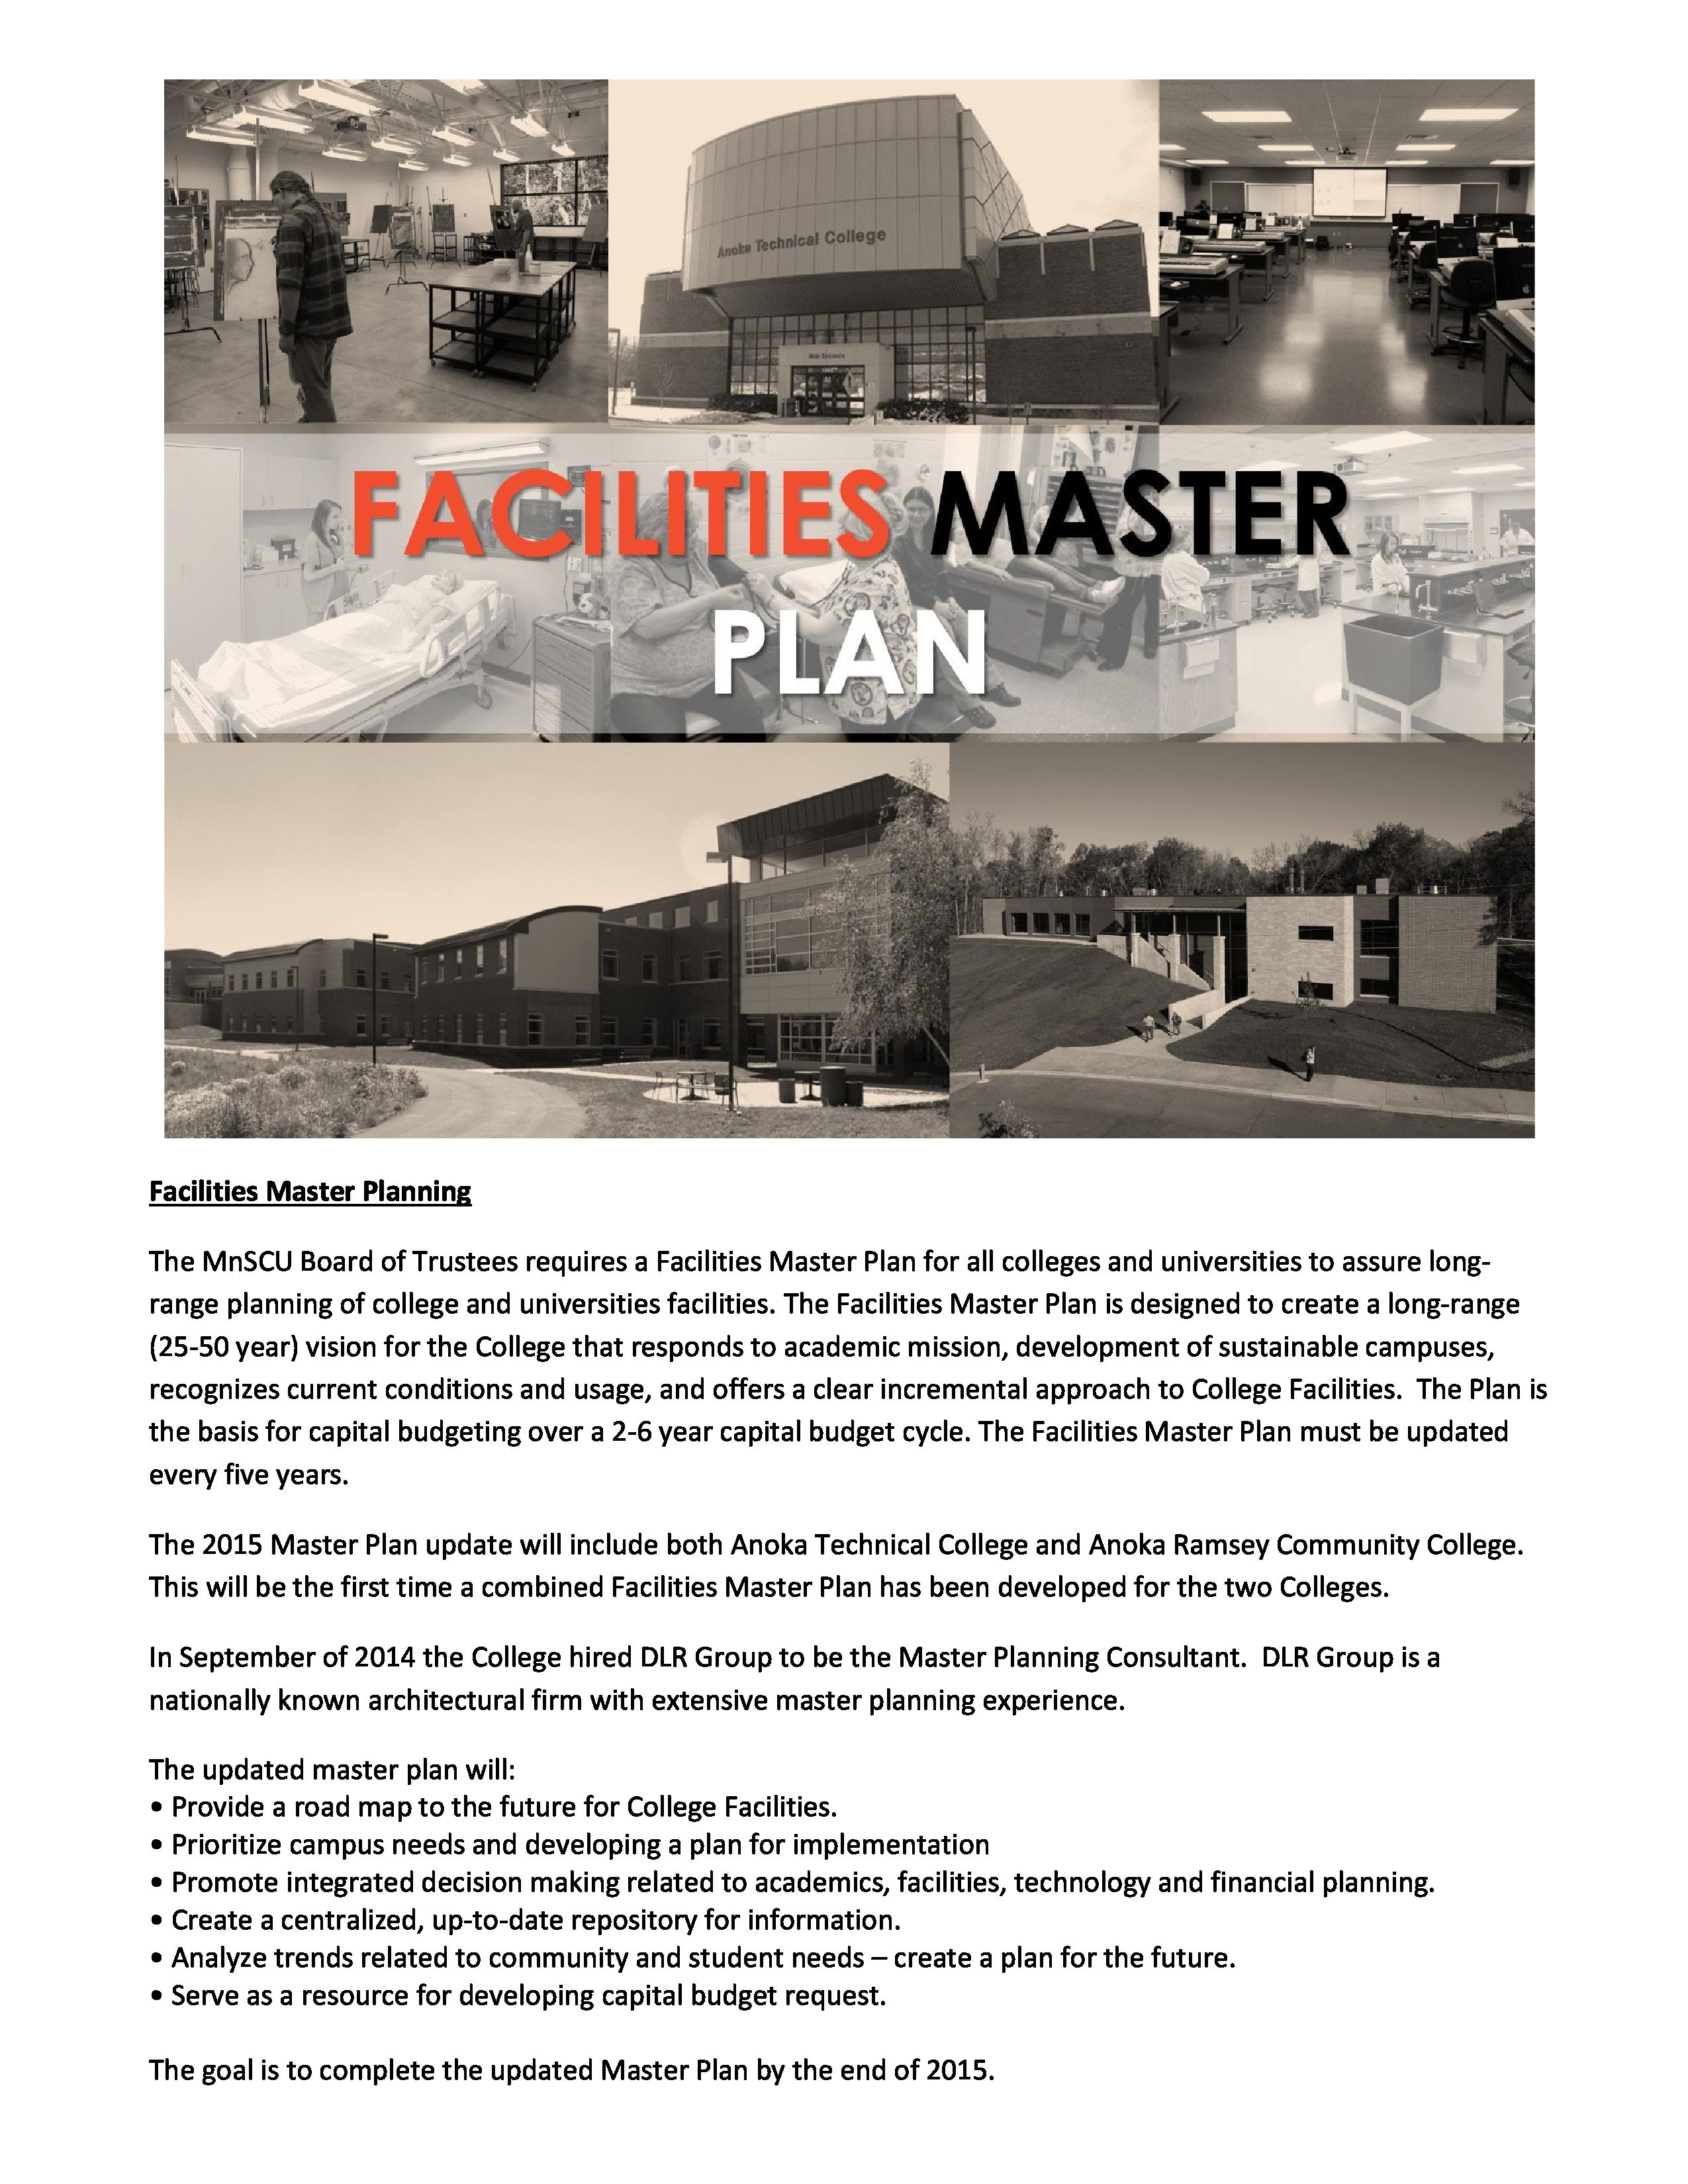 Facilities Master Plan 2015